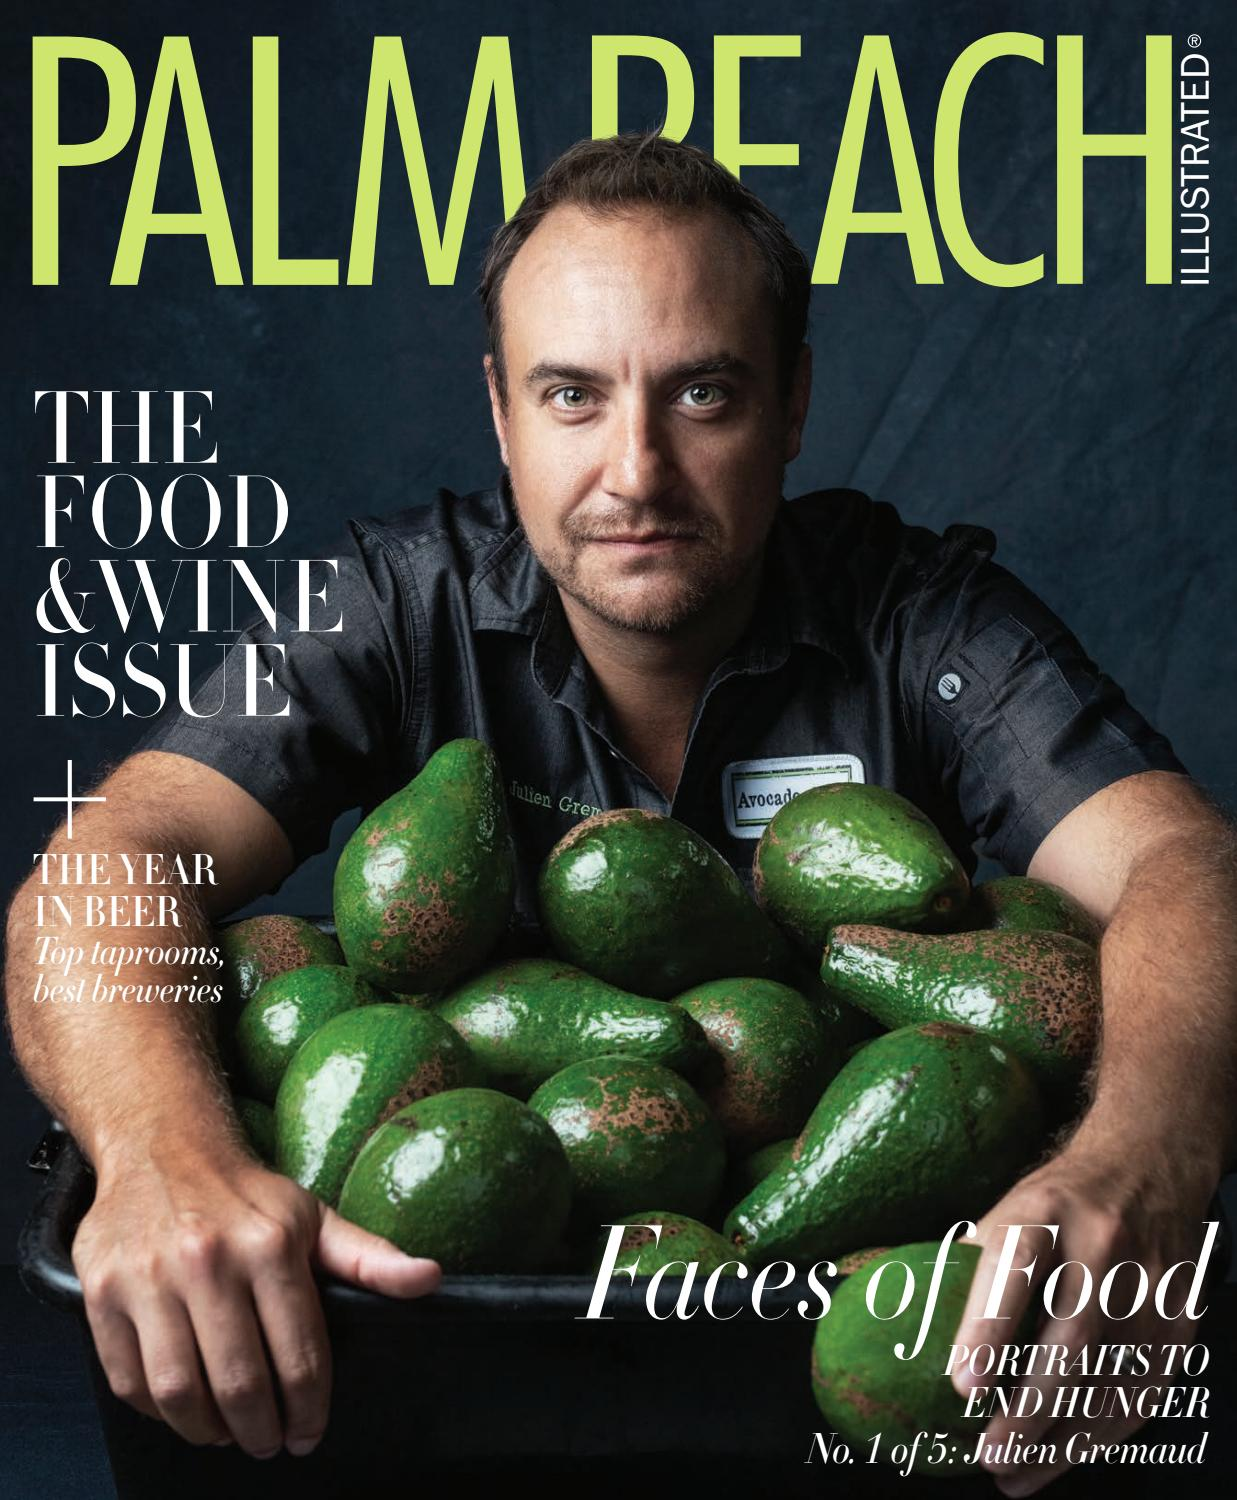 9c0fb4f1f92c9 Palm Beach Illustrated April 2019 Revised by Palm Beach Media Group - issuu